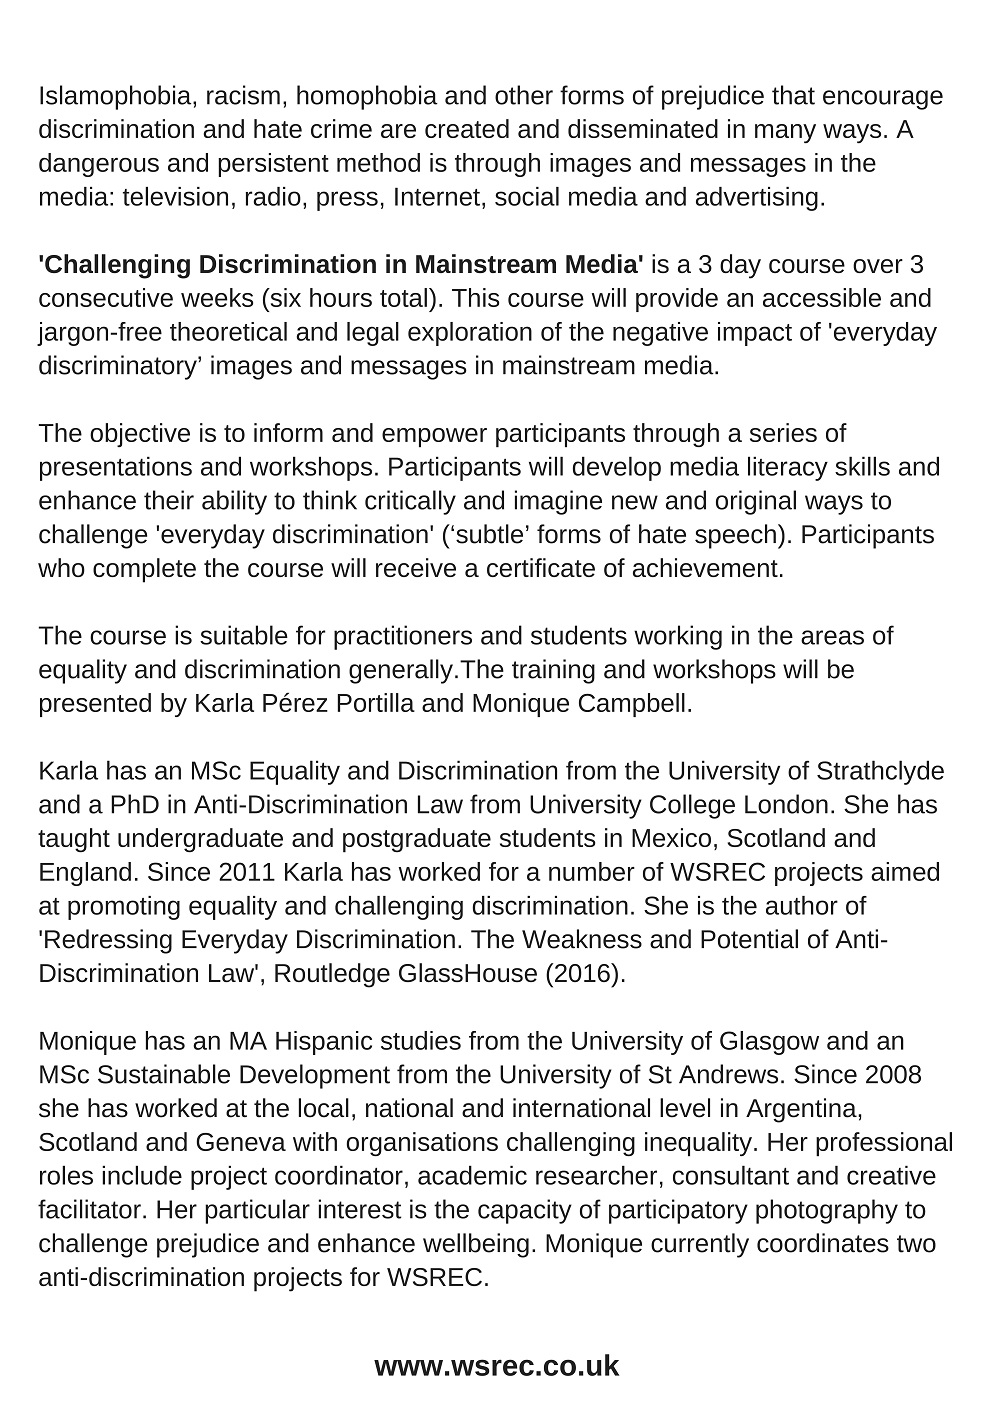 an experience of prejudice and discrimination as an international student